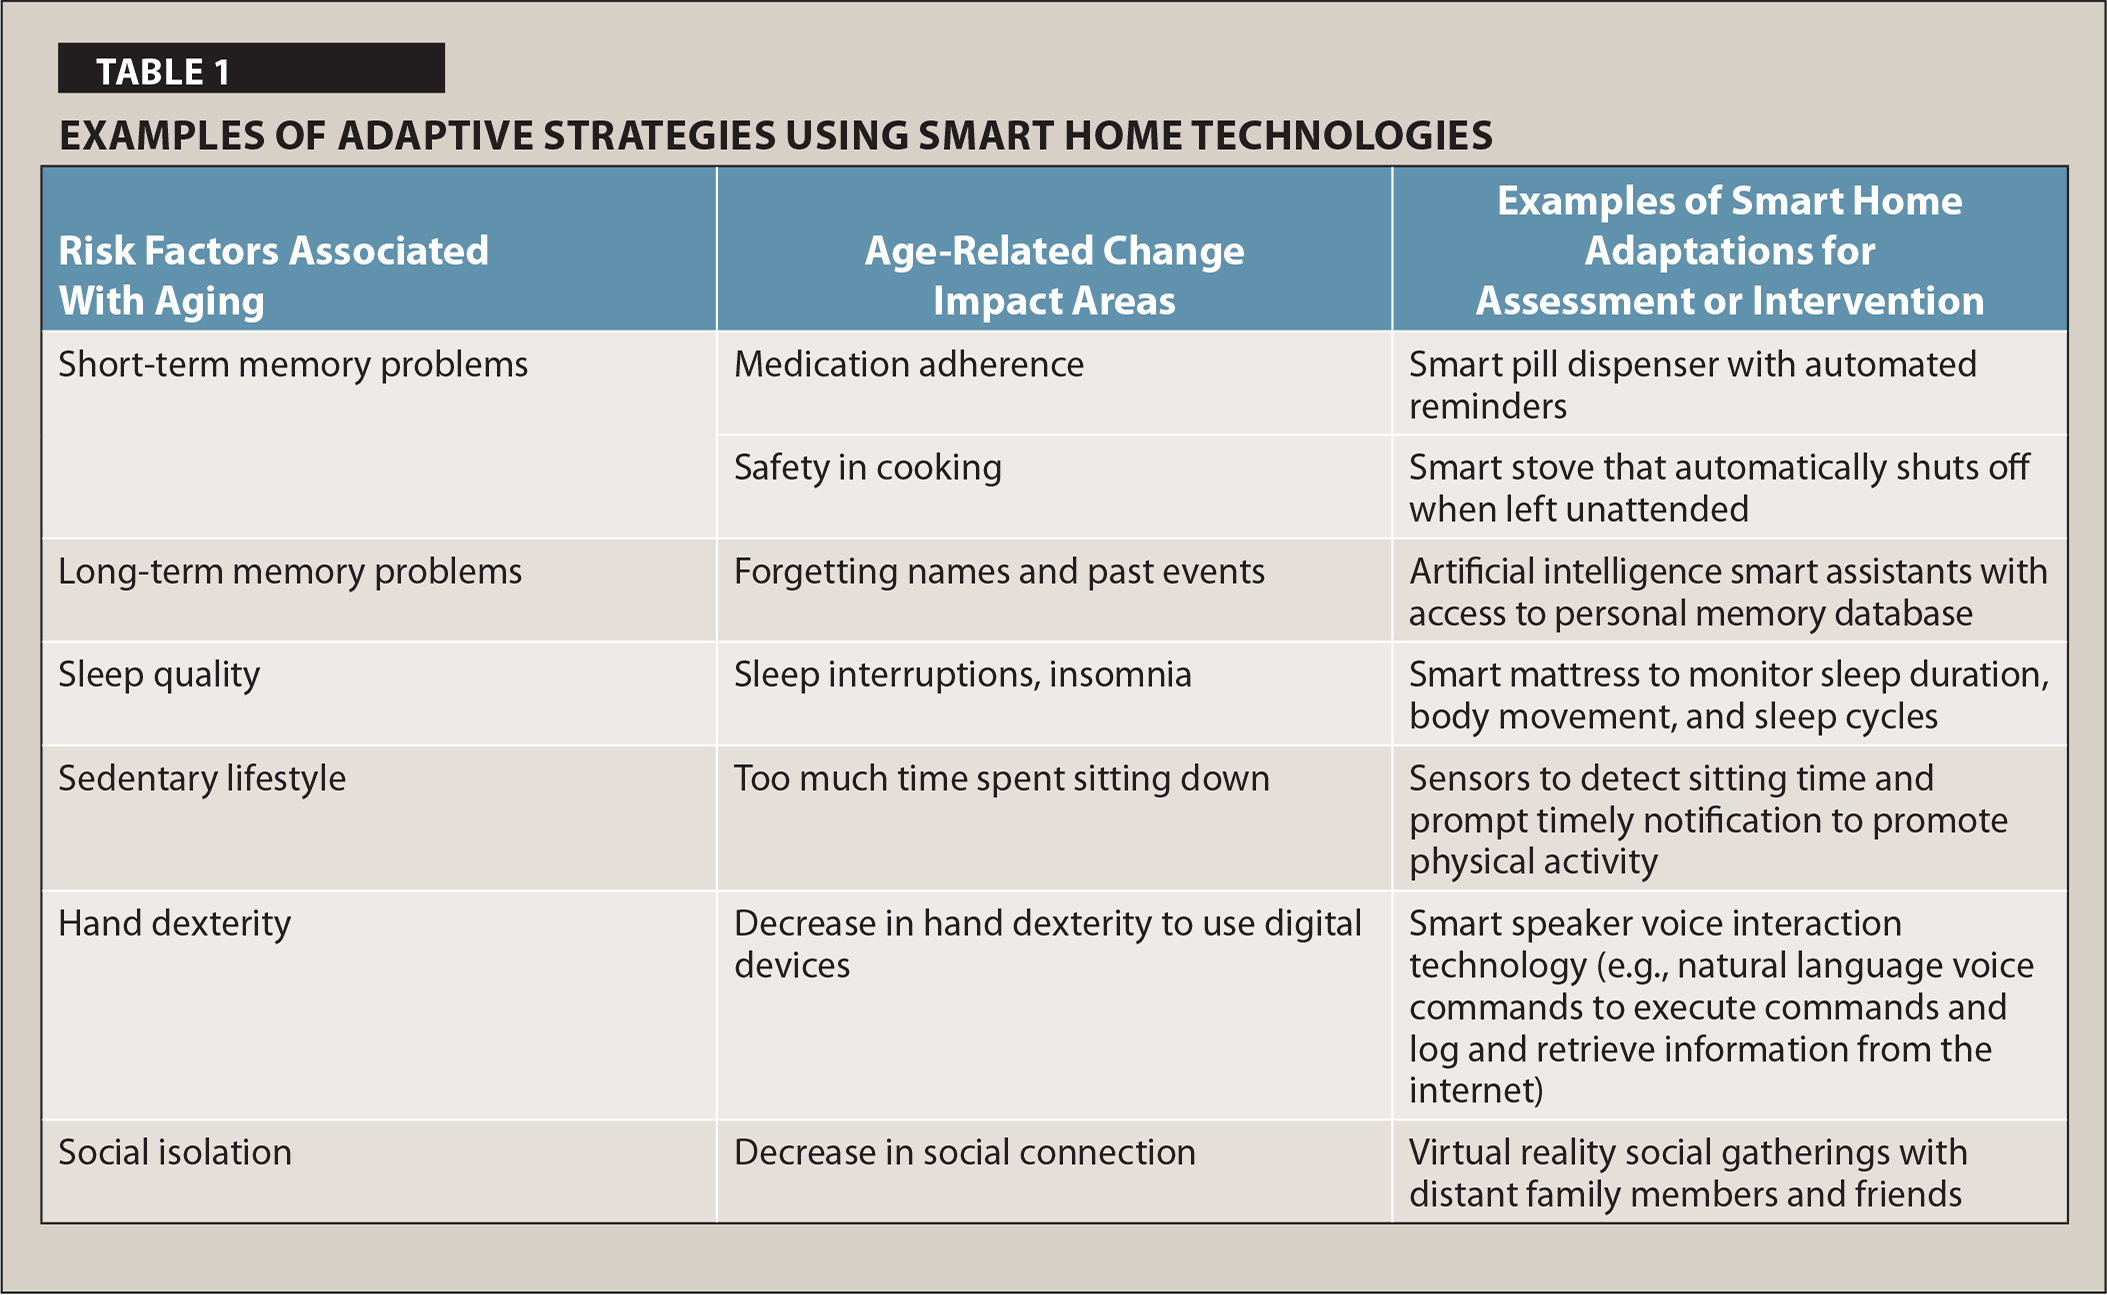 Examples of Adaptive Strategies Using Smart Home Technologies